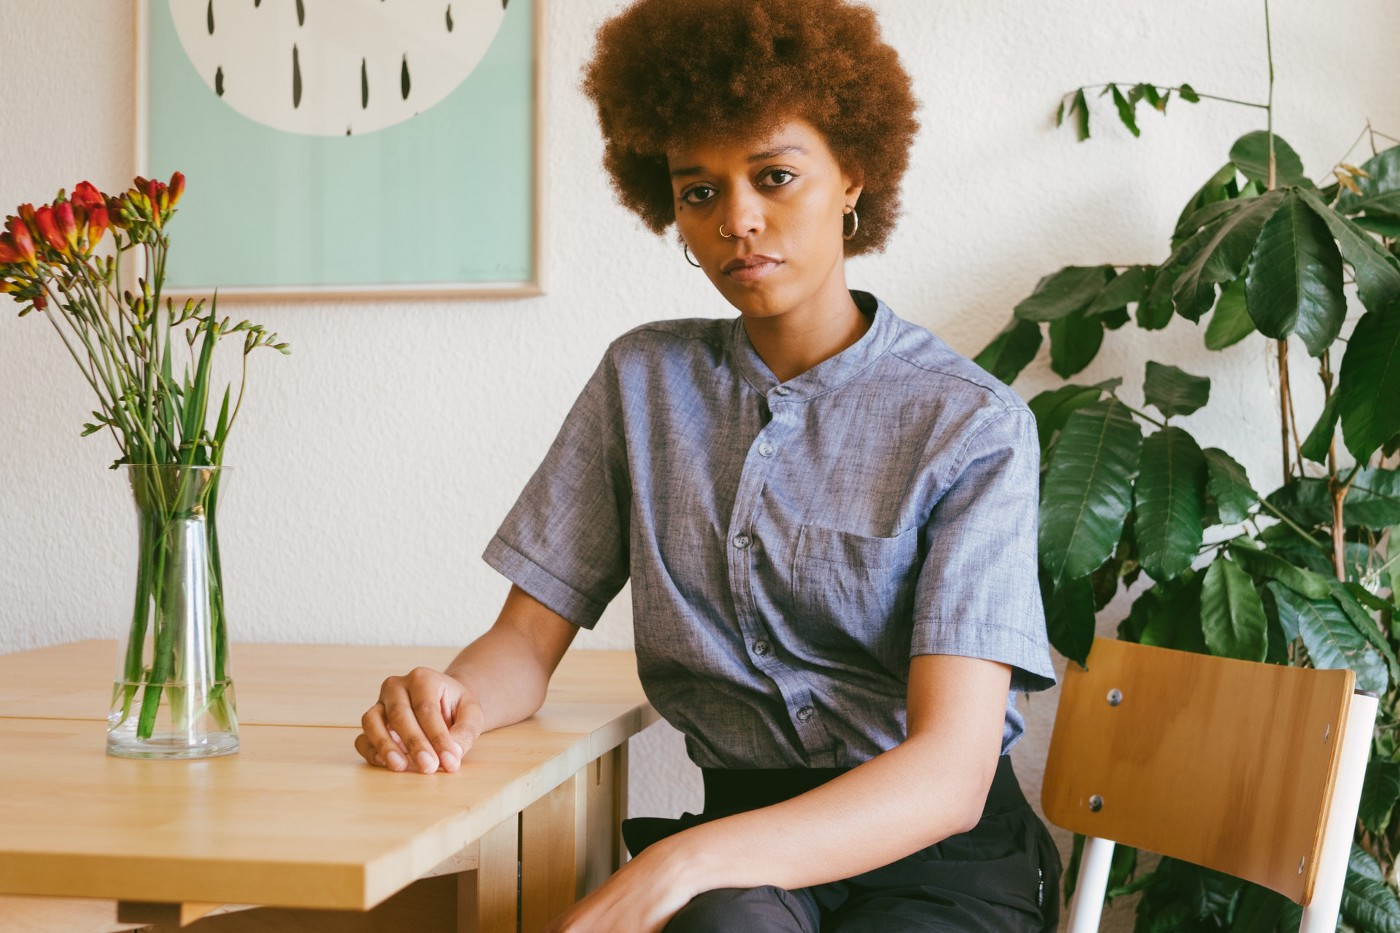 Black natural hair in the workplace is professional